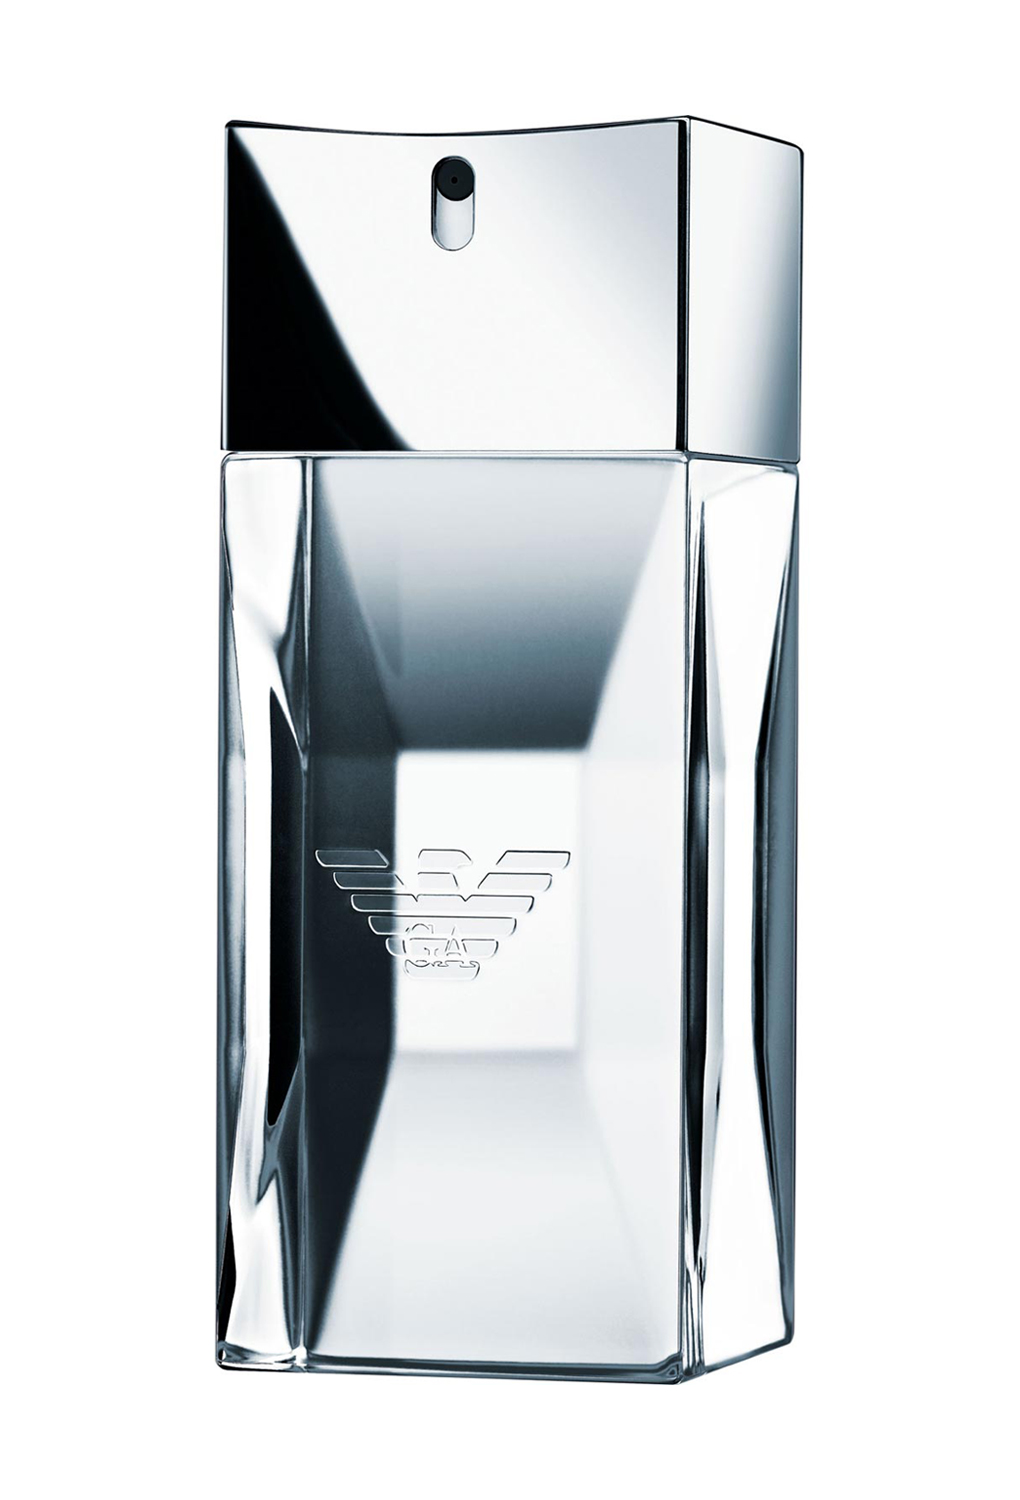 Giorgio Armani Emporio Armani Diamonds for Men Eau de Toilette Spray 100 ml